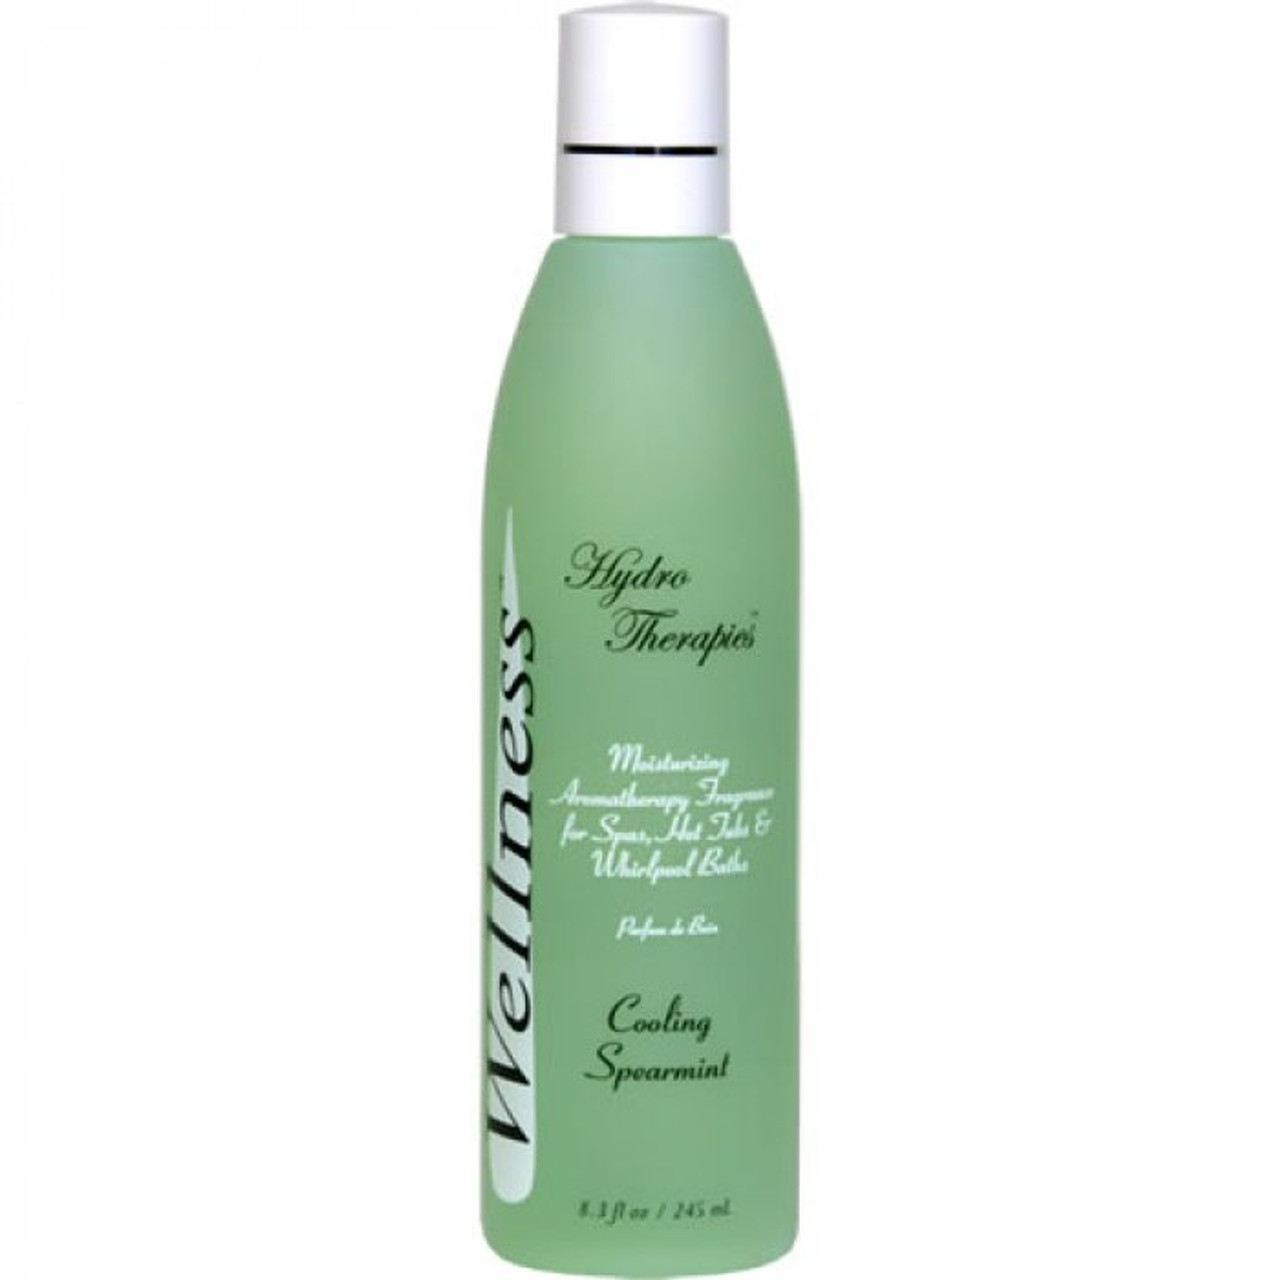 Master Spa - inSPAration Wellness Cleansing Cooling Spearmint